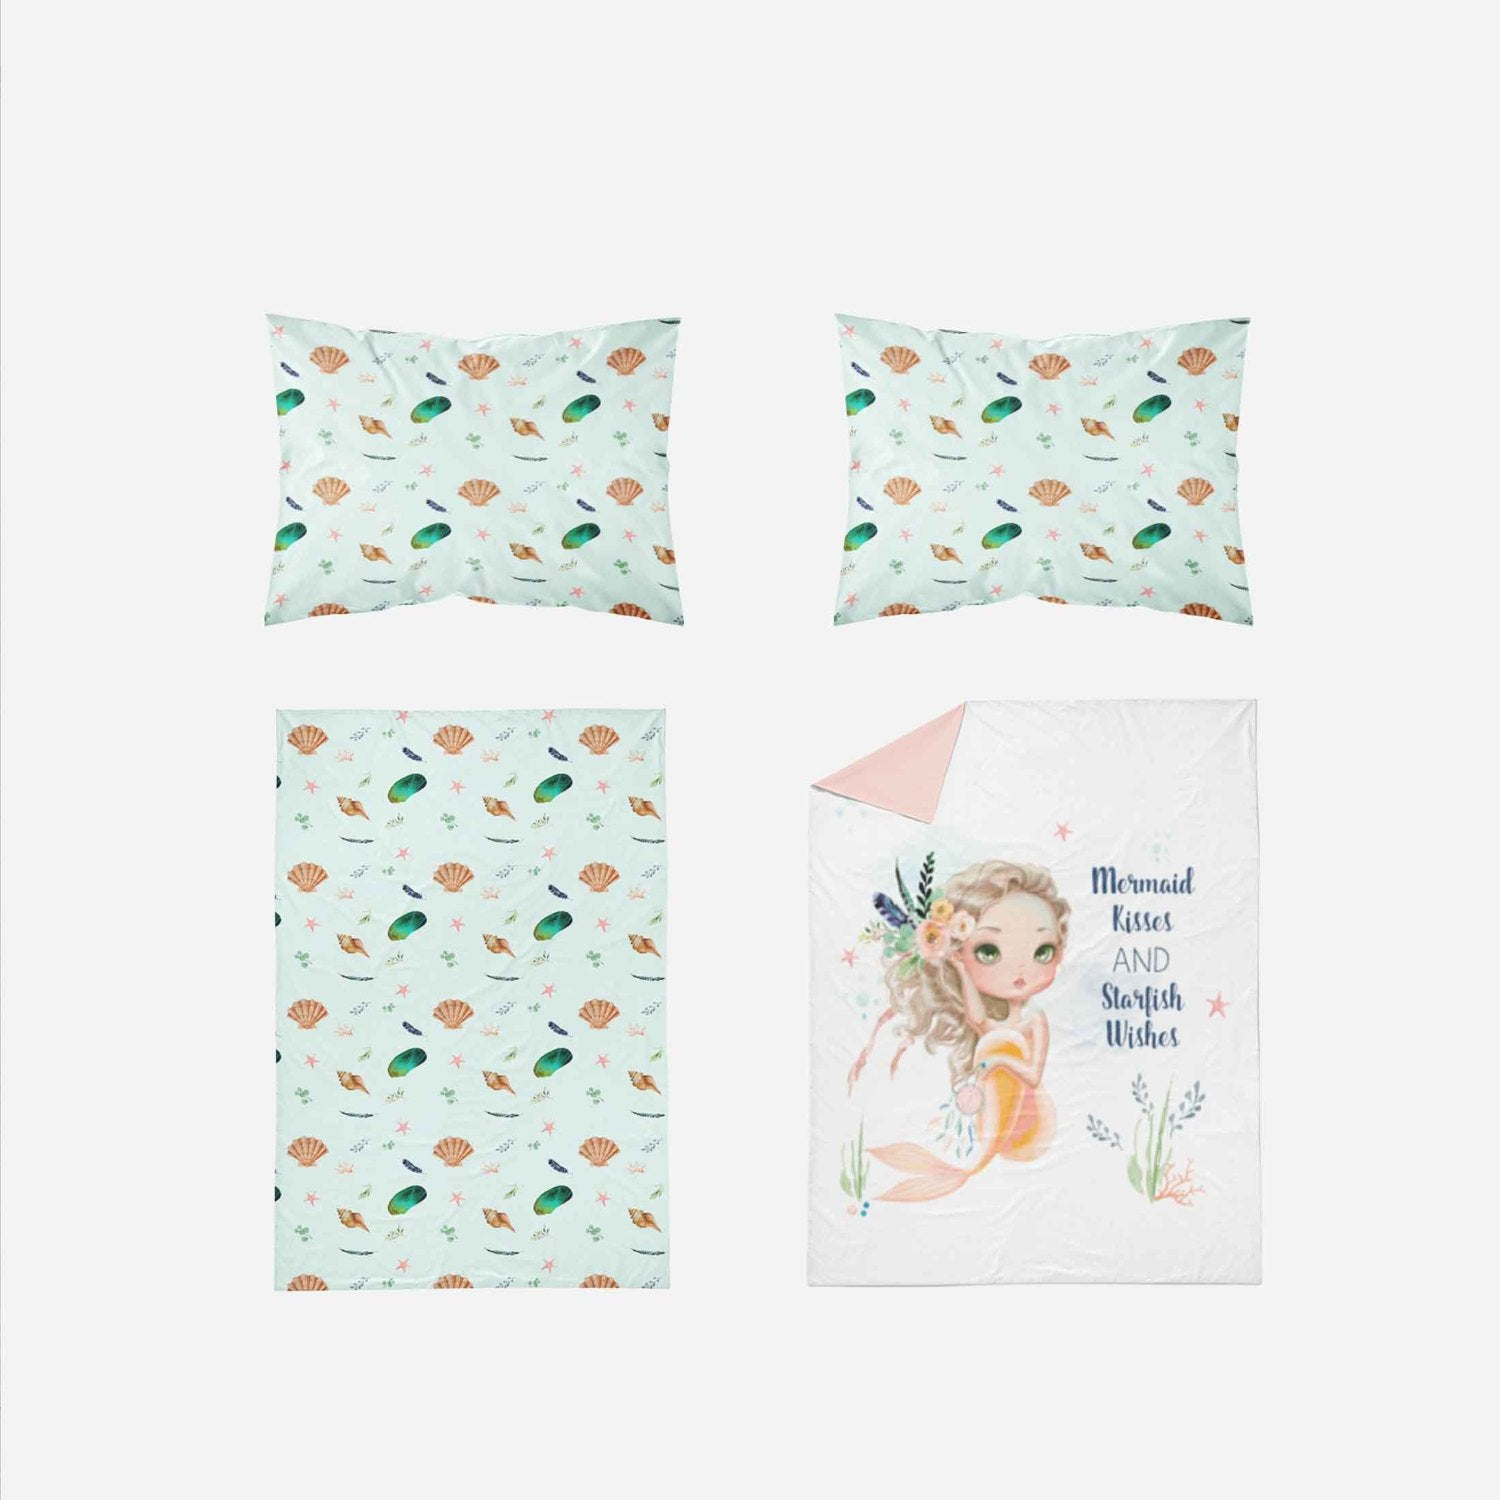 Mermaid Toddler Bedding - Peach Mint Mermaid Blanket - Orange Blossom Special  @orangeblossomspecial805